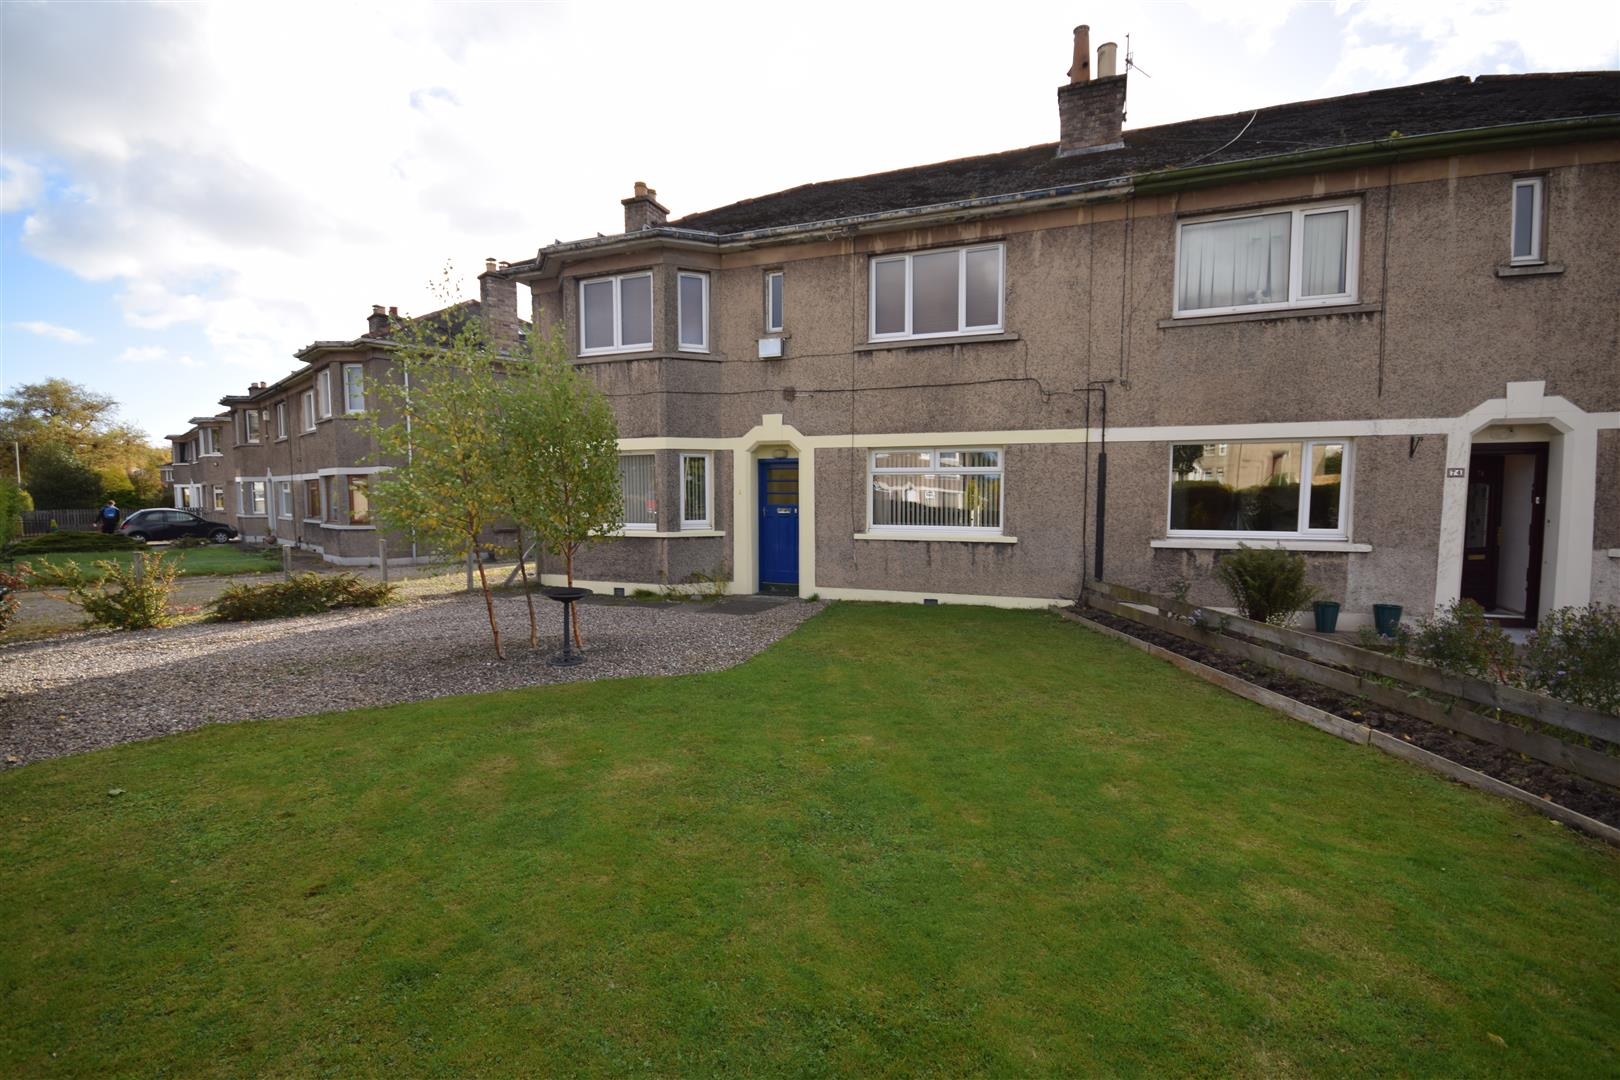 2, Malvina Place, Perth, Perthshire, PH1 5DY, UK